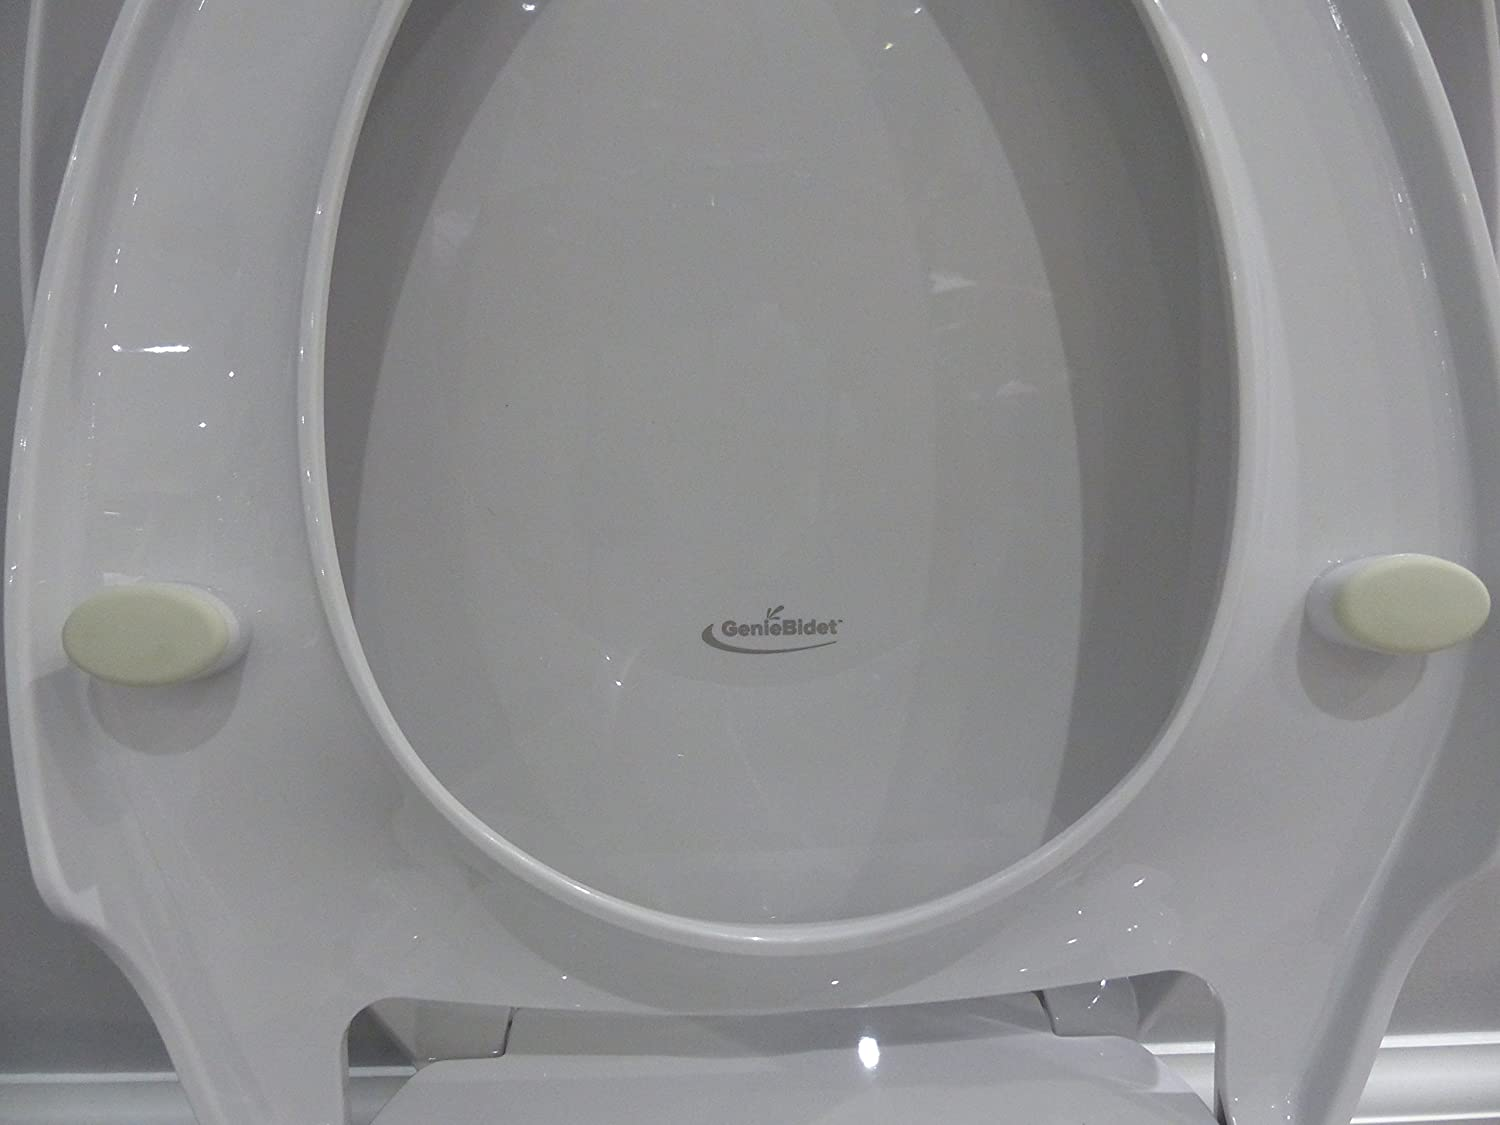 Superb Geniebidet Round Seat Self Cleaning Dual Nozzles Rear Feminine Cleaning No Wiring Required Simple 20 45 Minute Installation Or Less Hybrid T Pdpeps Interior Chair Design Pdpepsorg